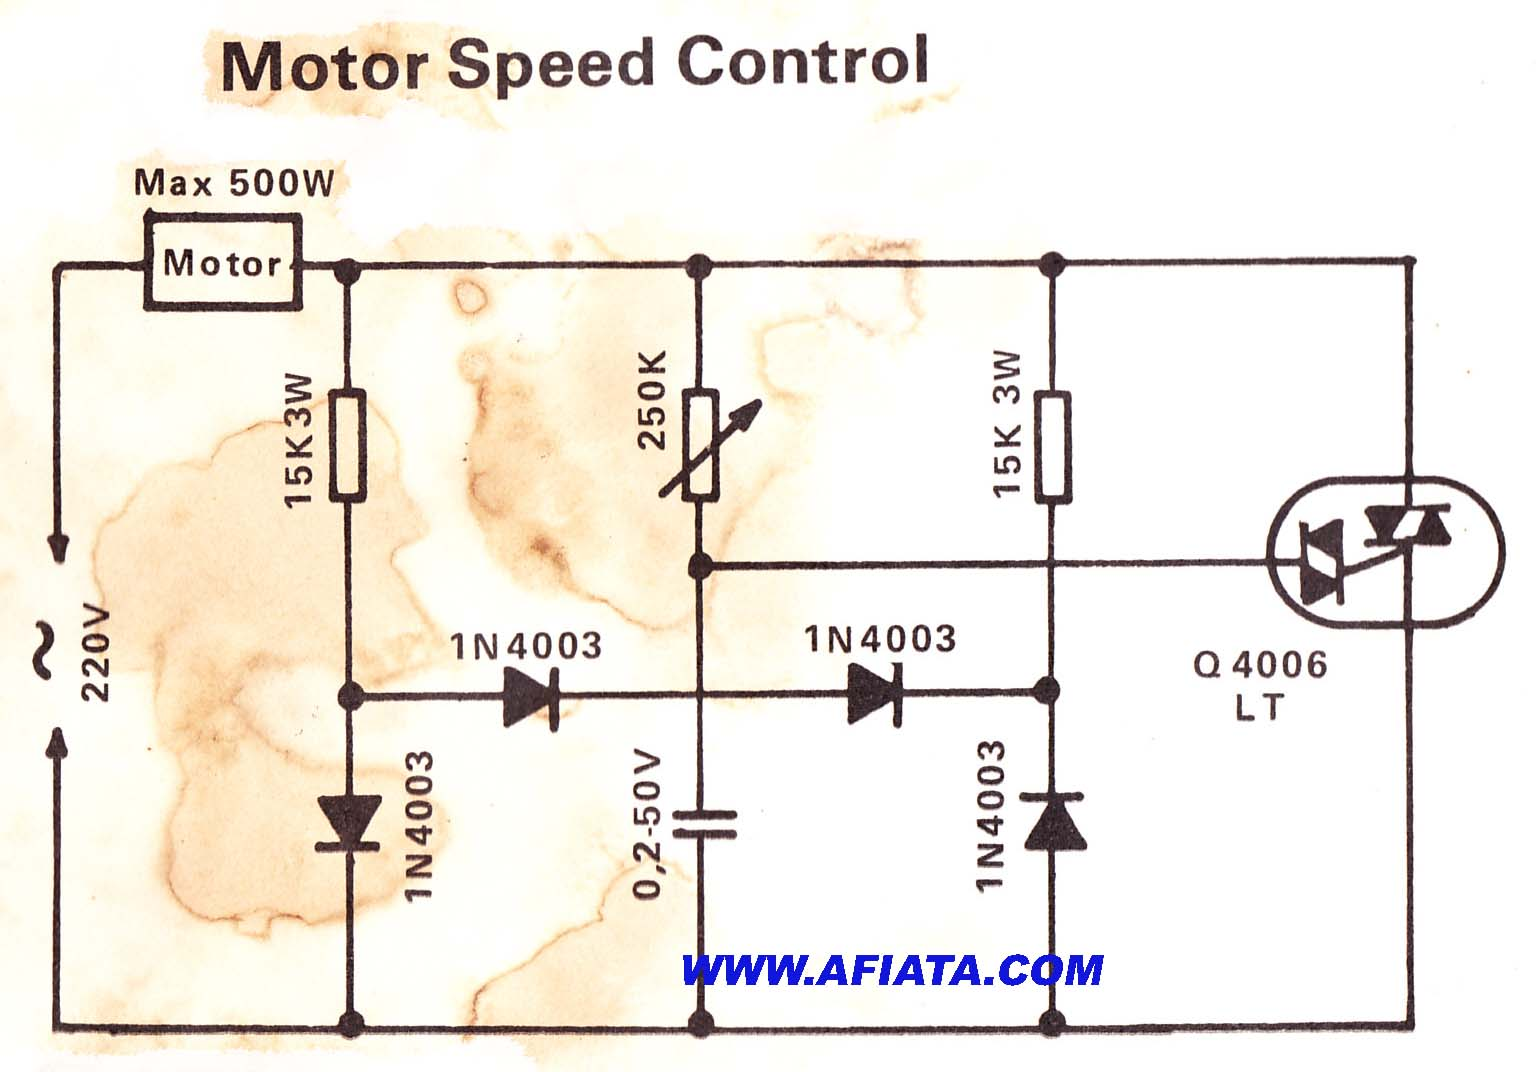 Wiring Diagram For Speed Control Golden Schematic 2008 Silverado Cruise Of The Motor Speeds